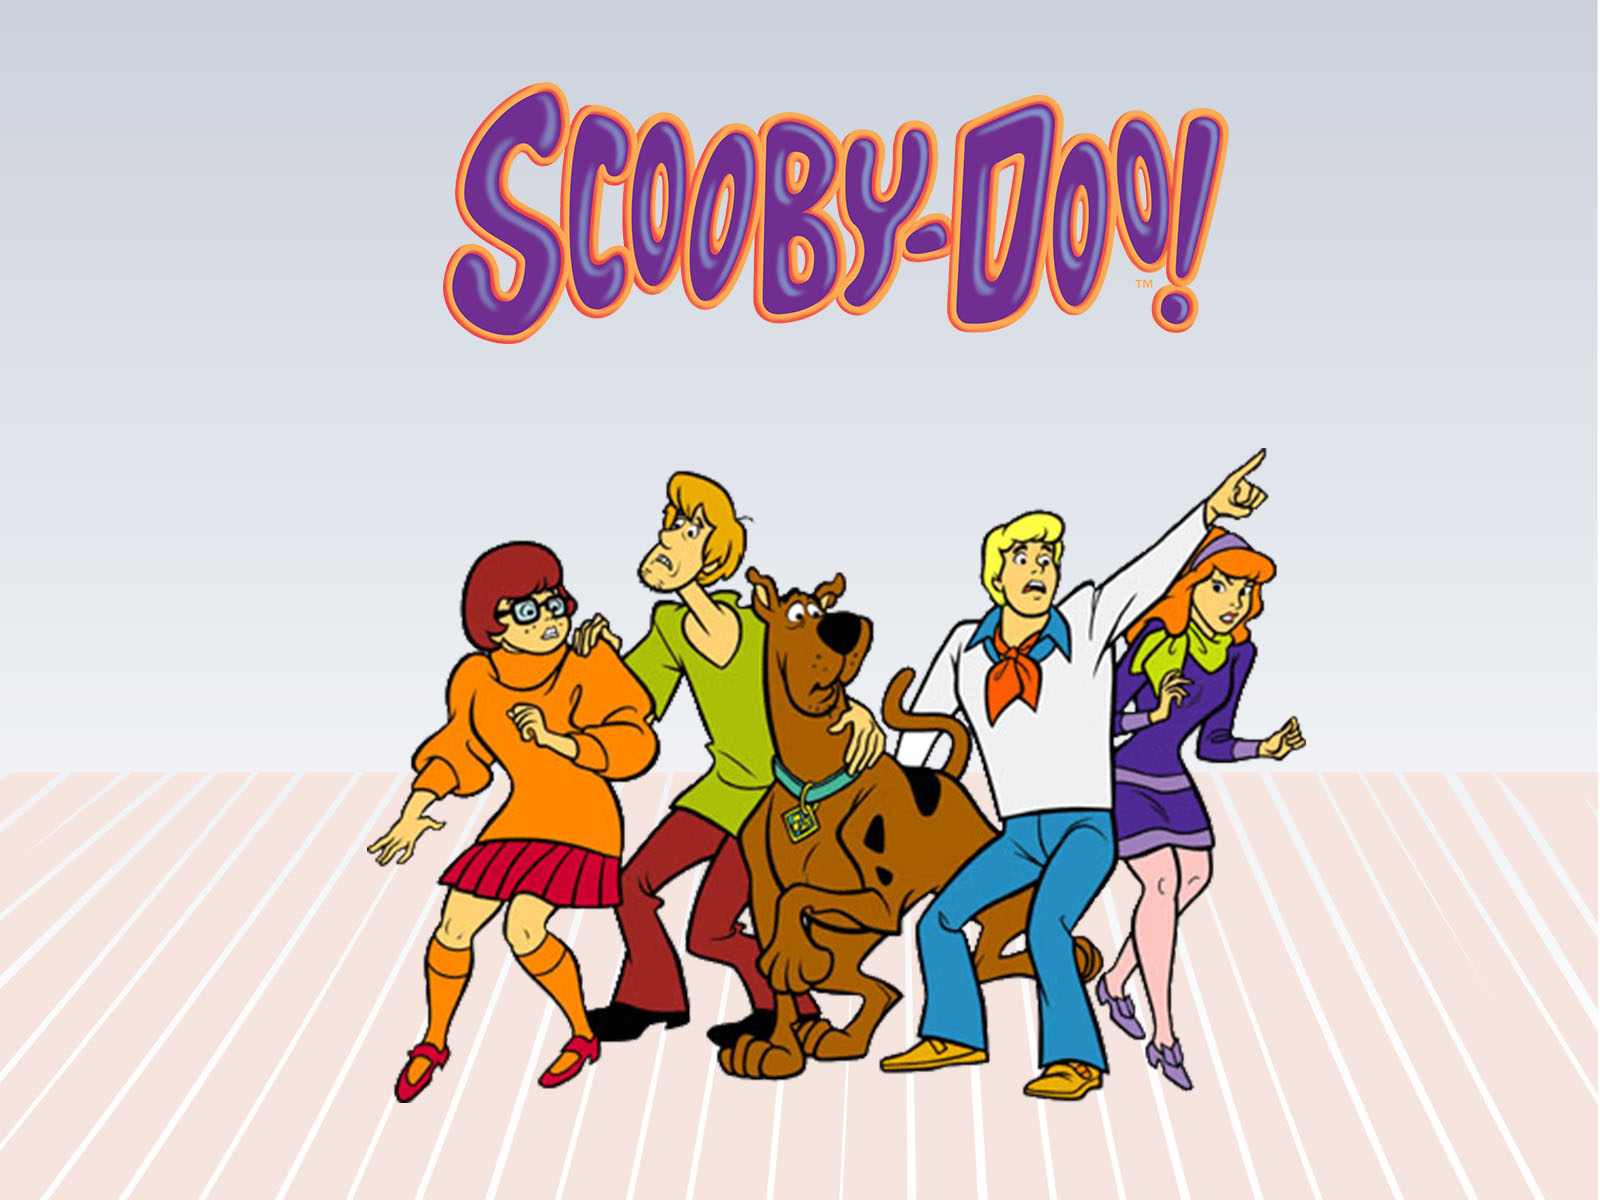 Scooby Doo Characters Backgrounds | Cartoon, Grey, Pink ...